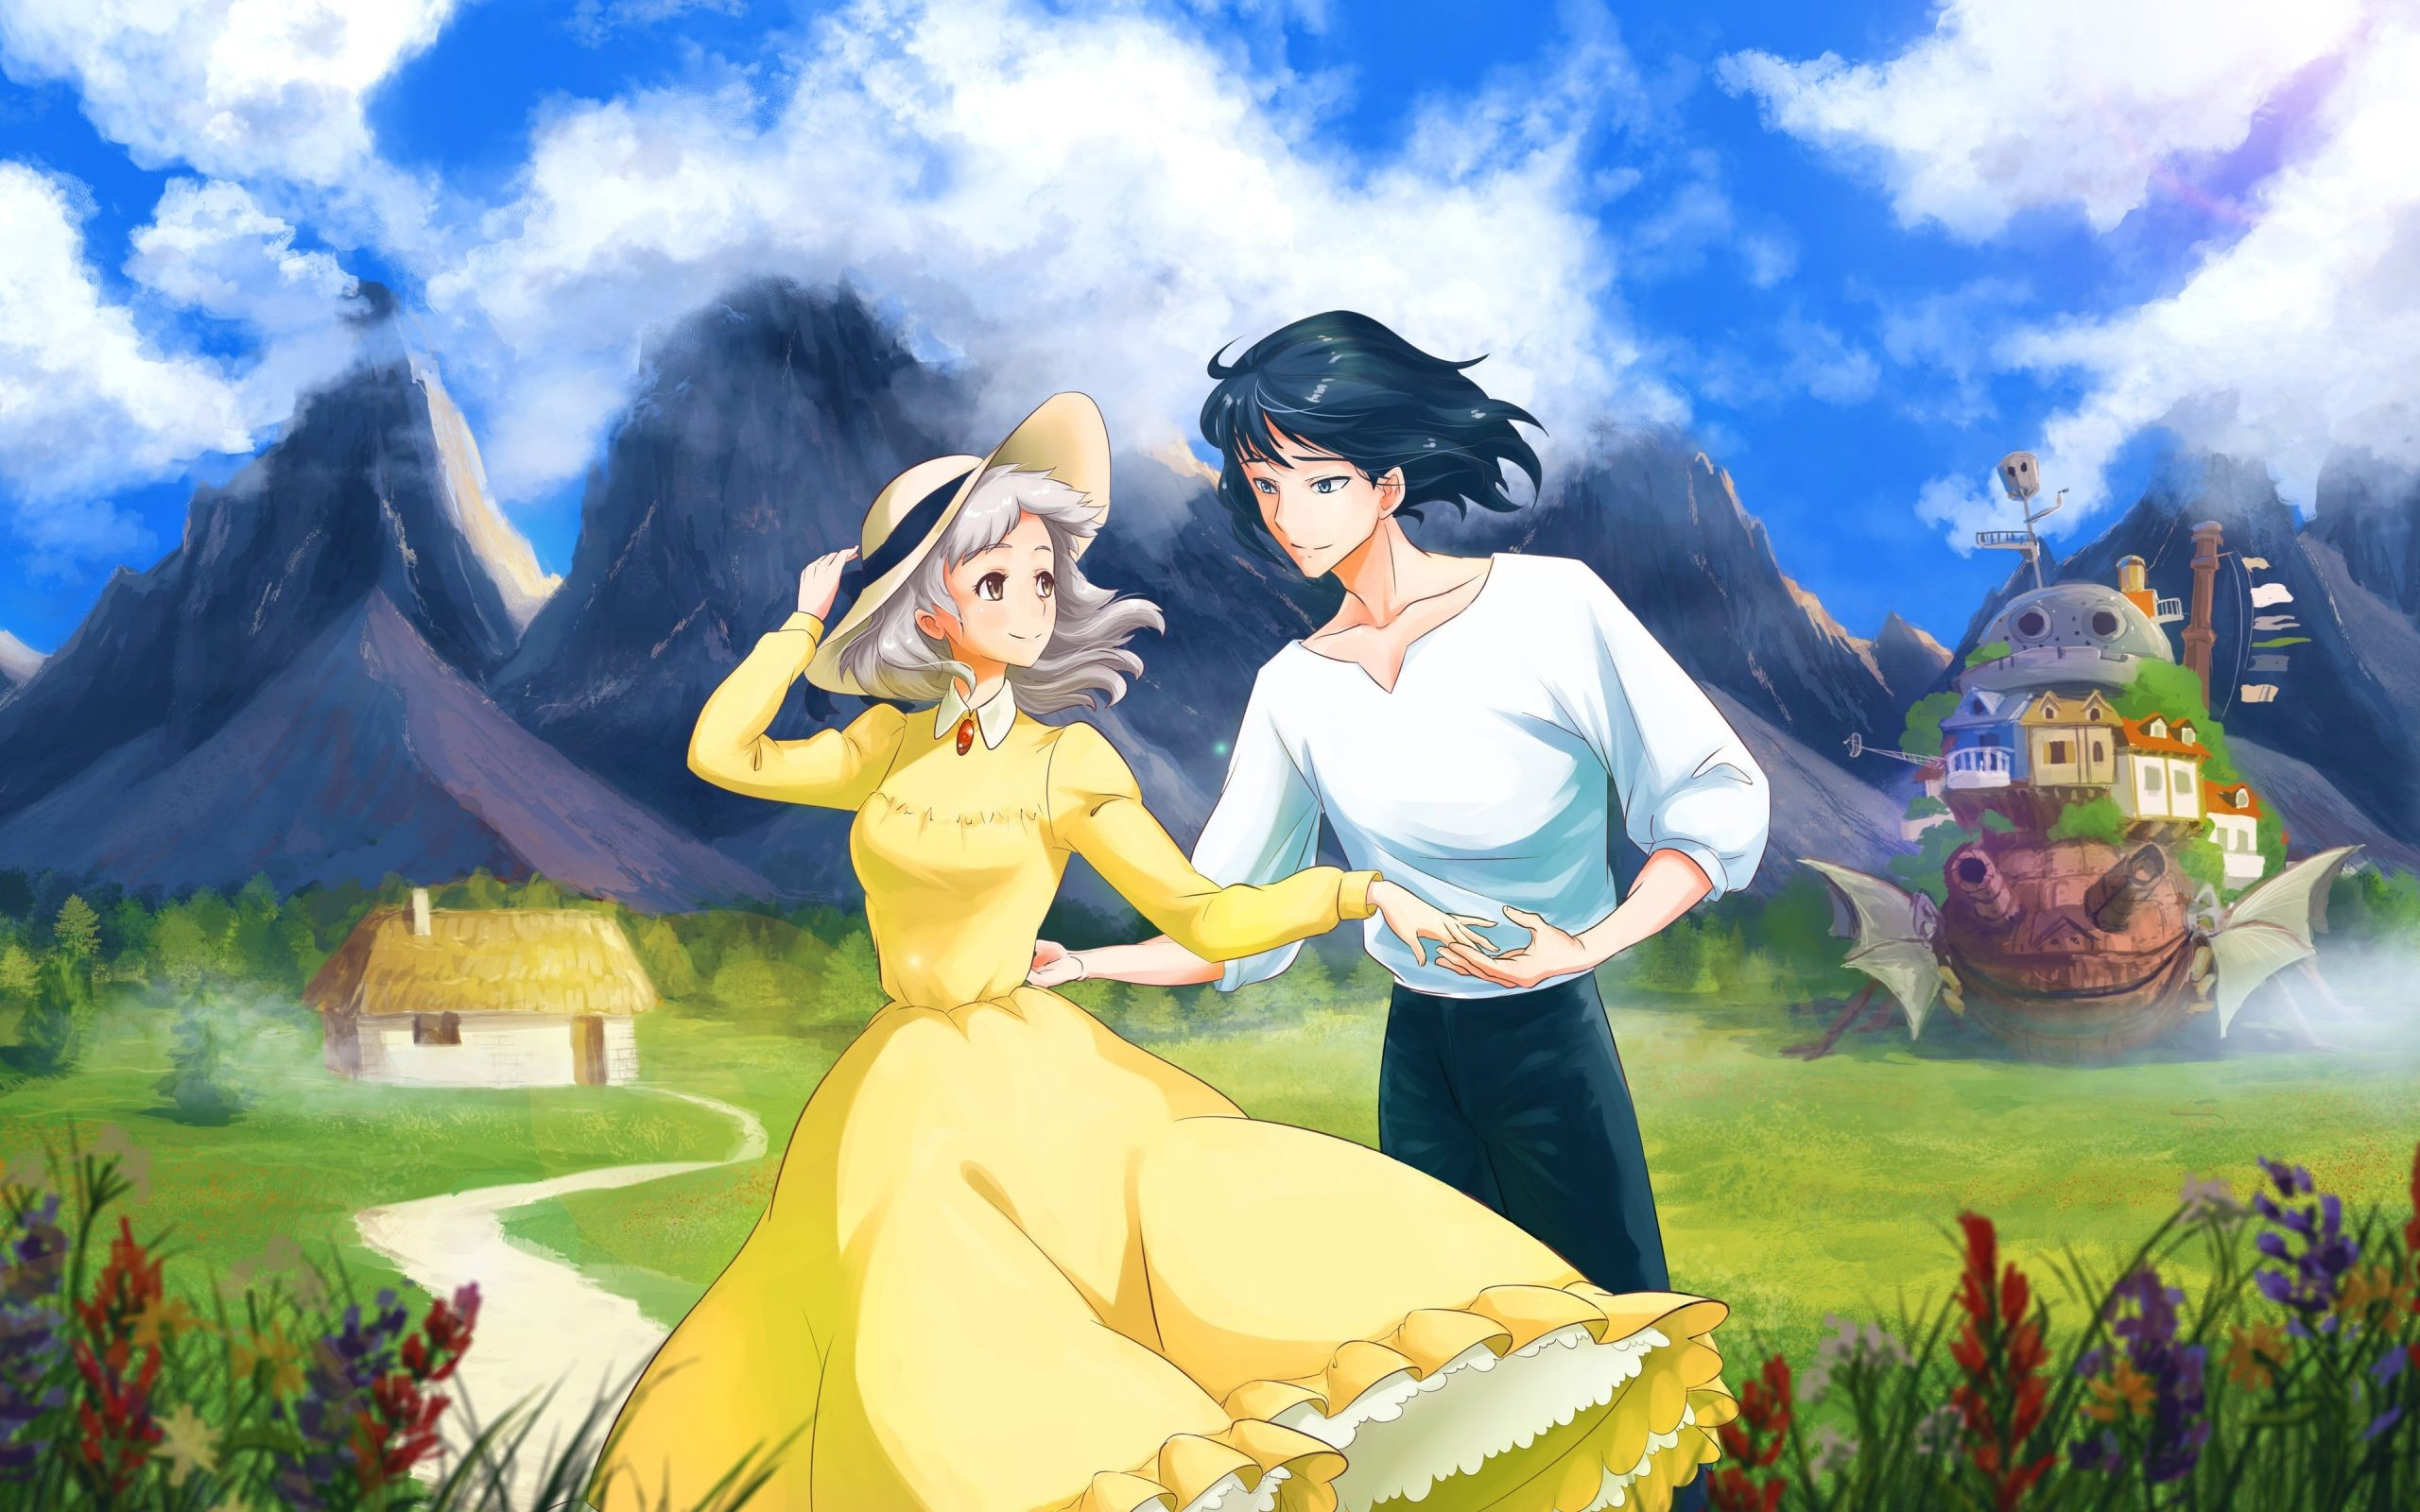 Howl's moving castle Sophie Hatter and Prince Justin